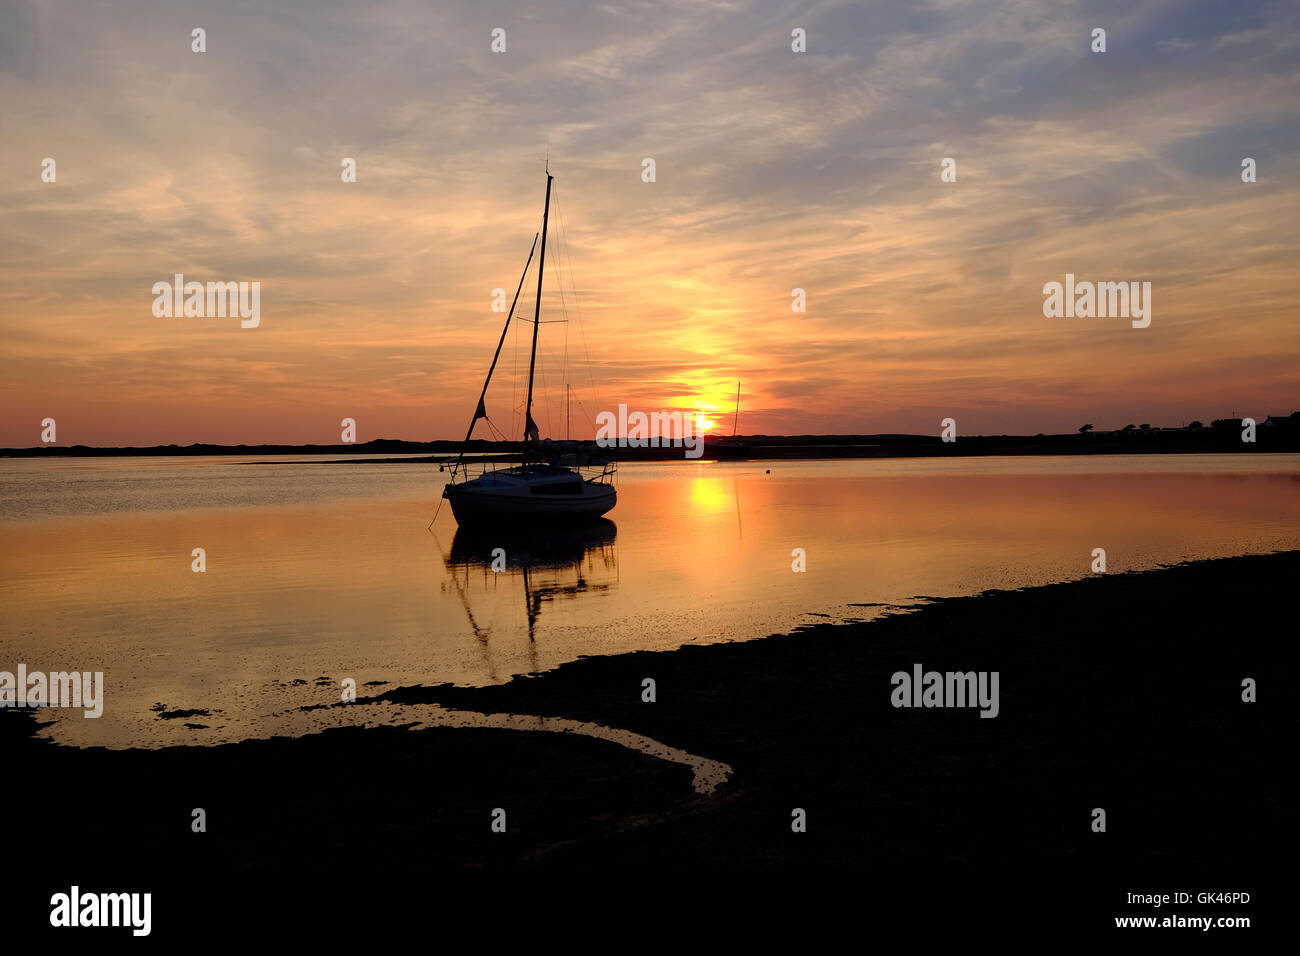 boat at sunset on River Esk at Ravenglass - Stock Image